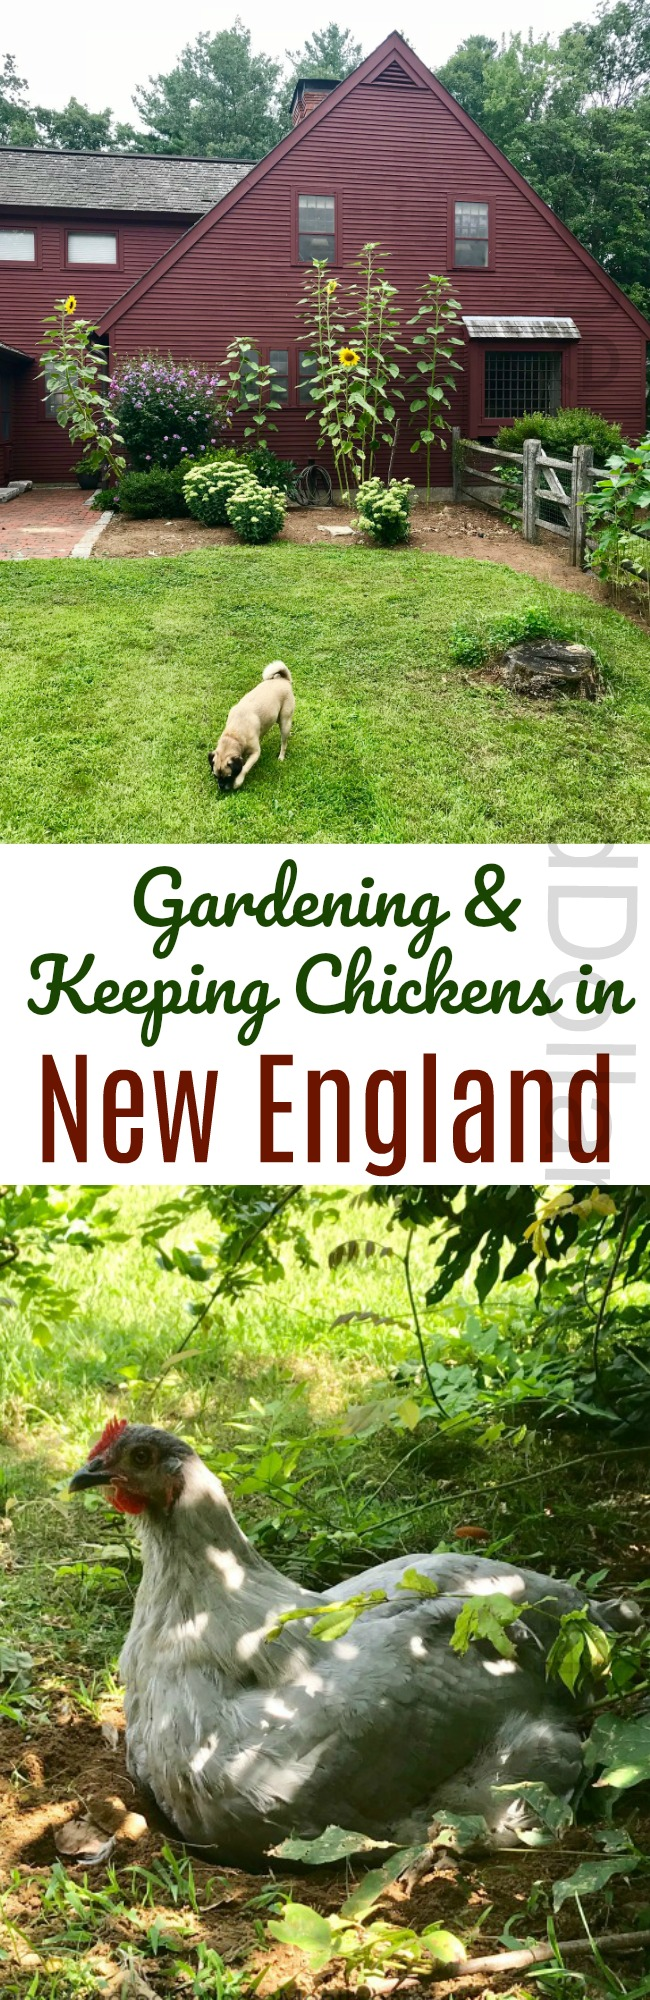 Gardening in New England – An Update on the Chicken Run and The Backyard Vegetable Garden Tally for 8/22/2018